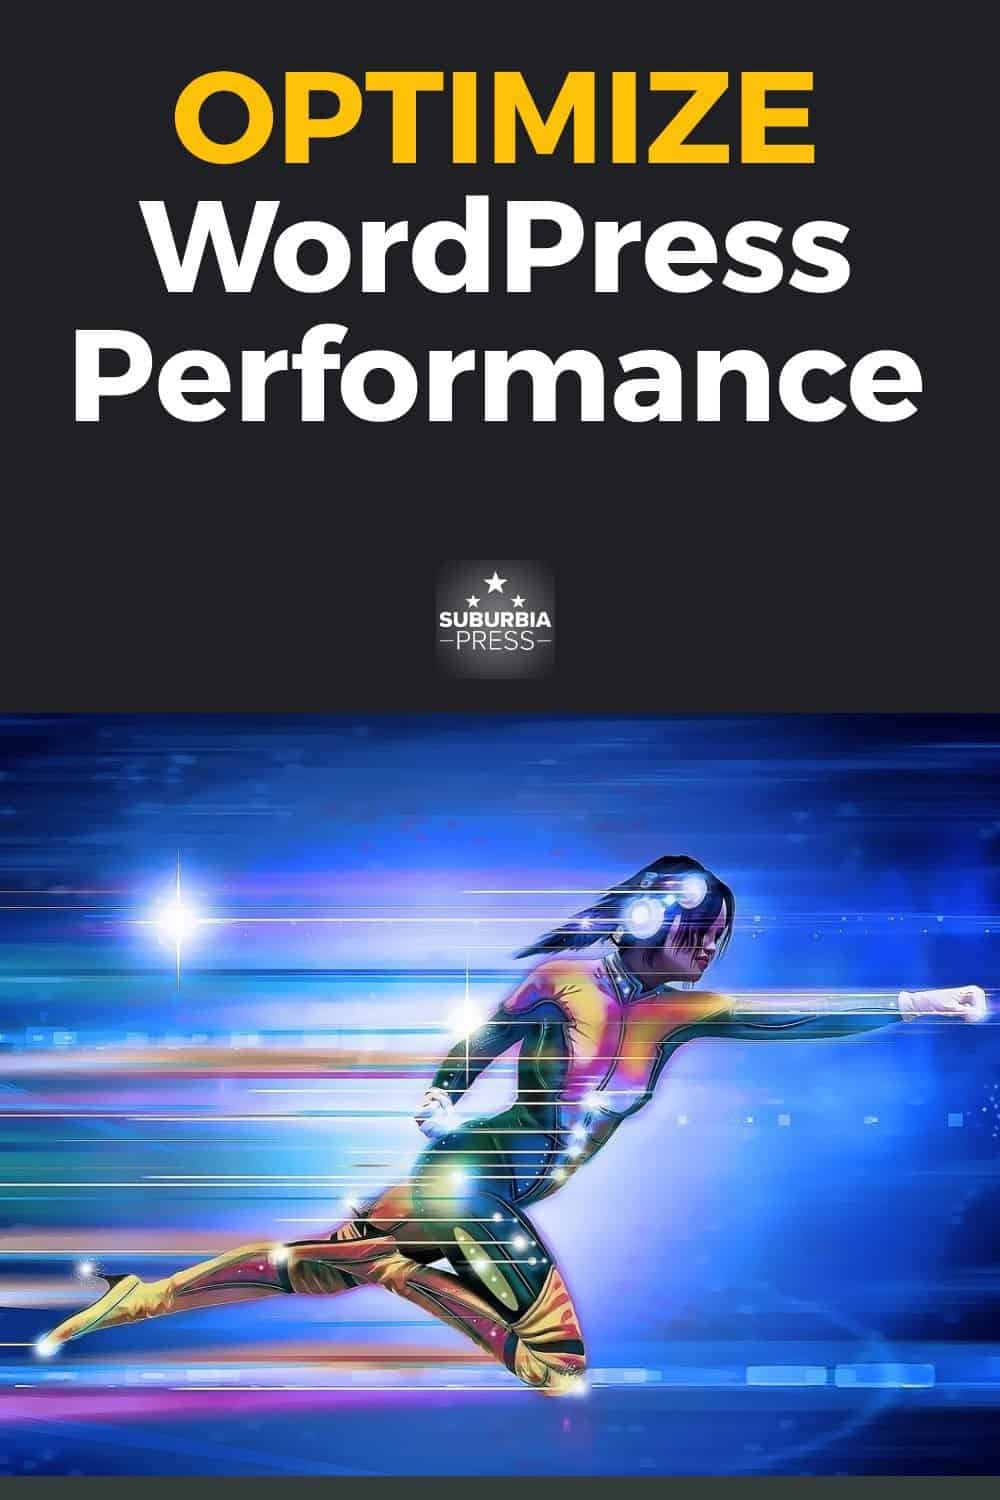 Optimize WordPress Performance with 5 Great Tools